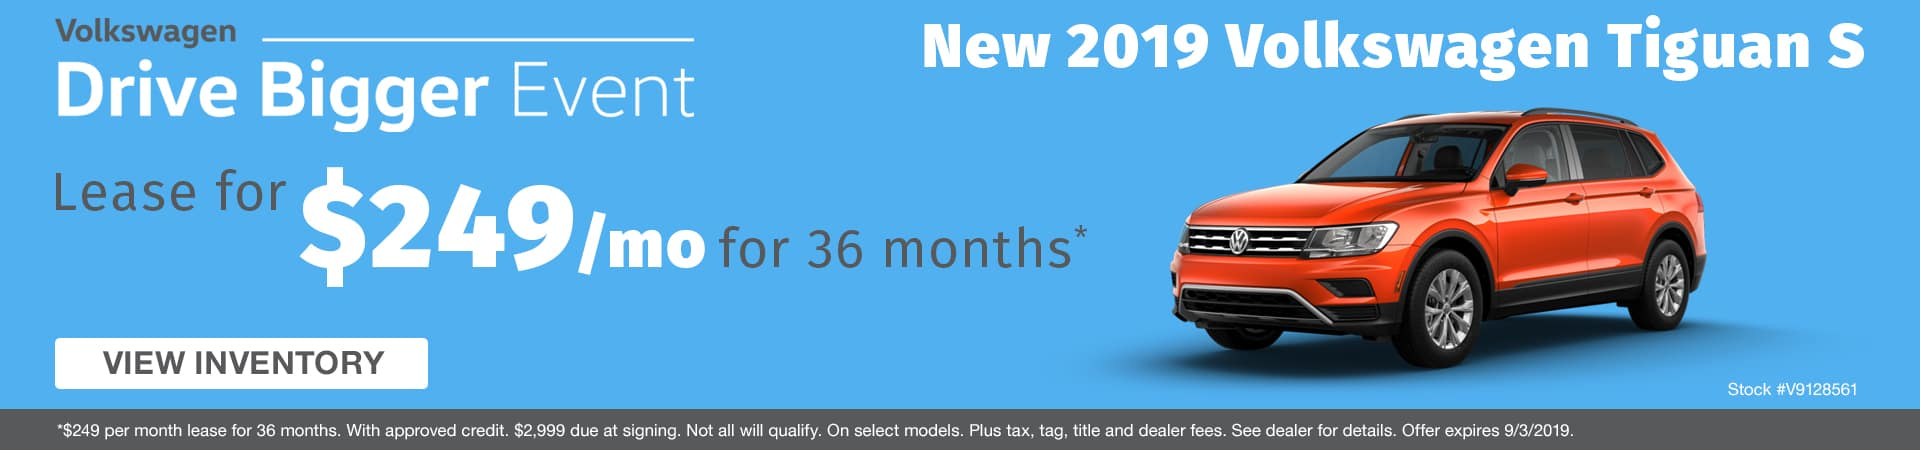 Lease a new 2019 Volkswagen Tiguan for just $249 a month in Murfreesboro TN